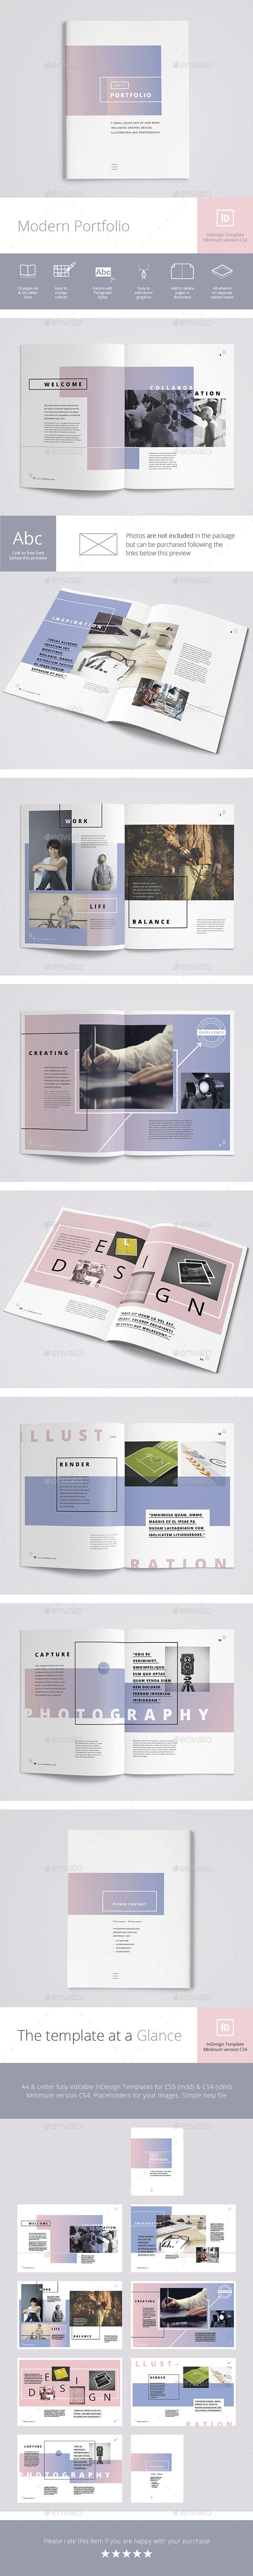 Modern Portfolio Brochure Template InDesign INDD. Download here: https://graphicriver.net/item/modern-portfolio/17517824?ref=ksioks